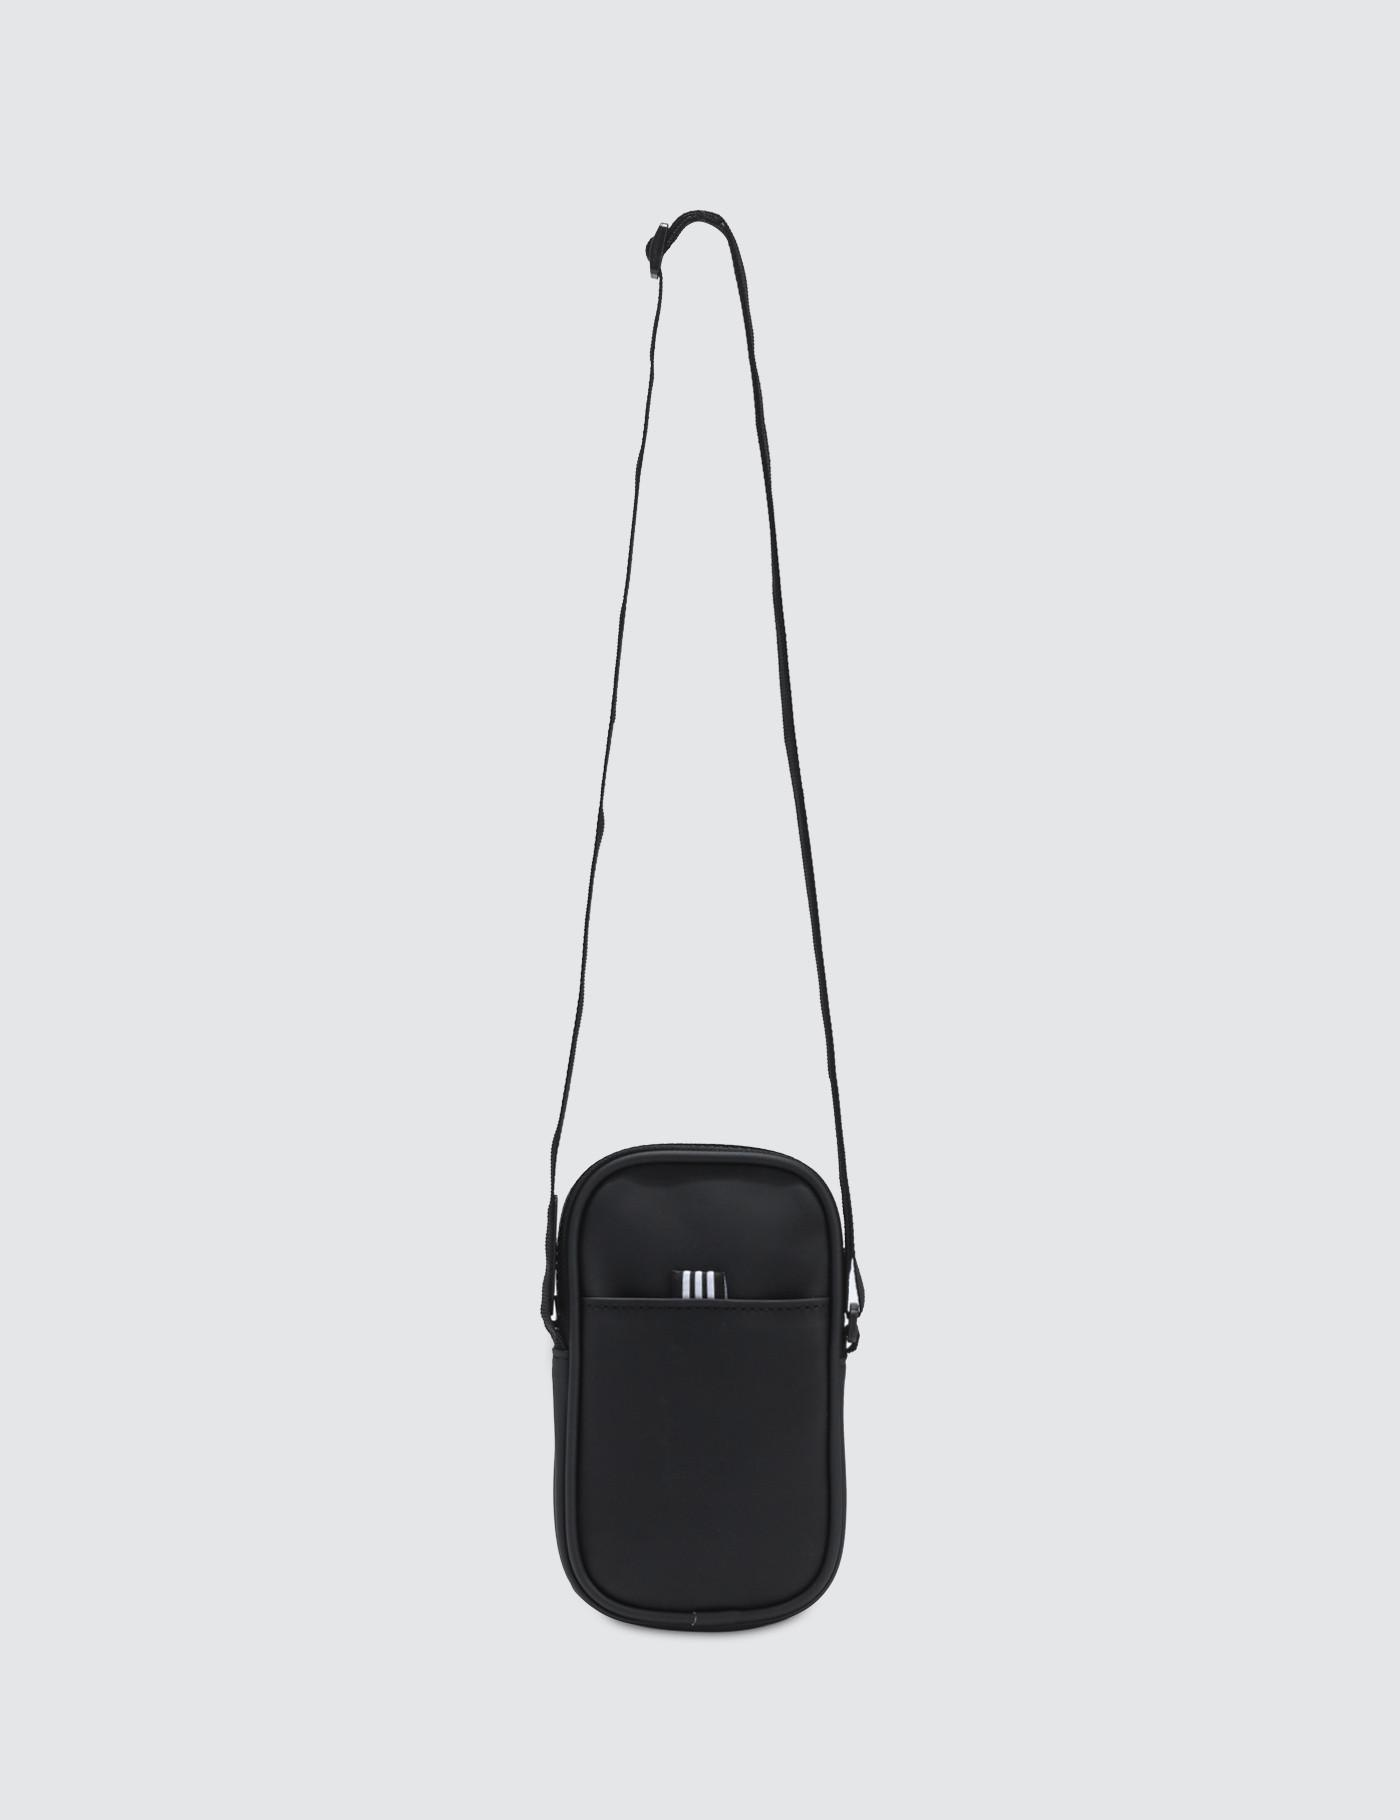 d1afd0a54be5 Lyst - adidas Originals Adidas Nmd Pouch Bag in Black